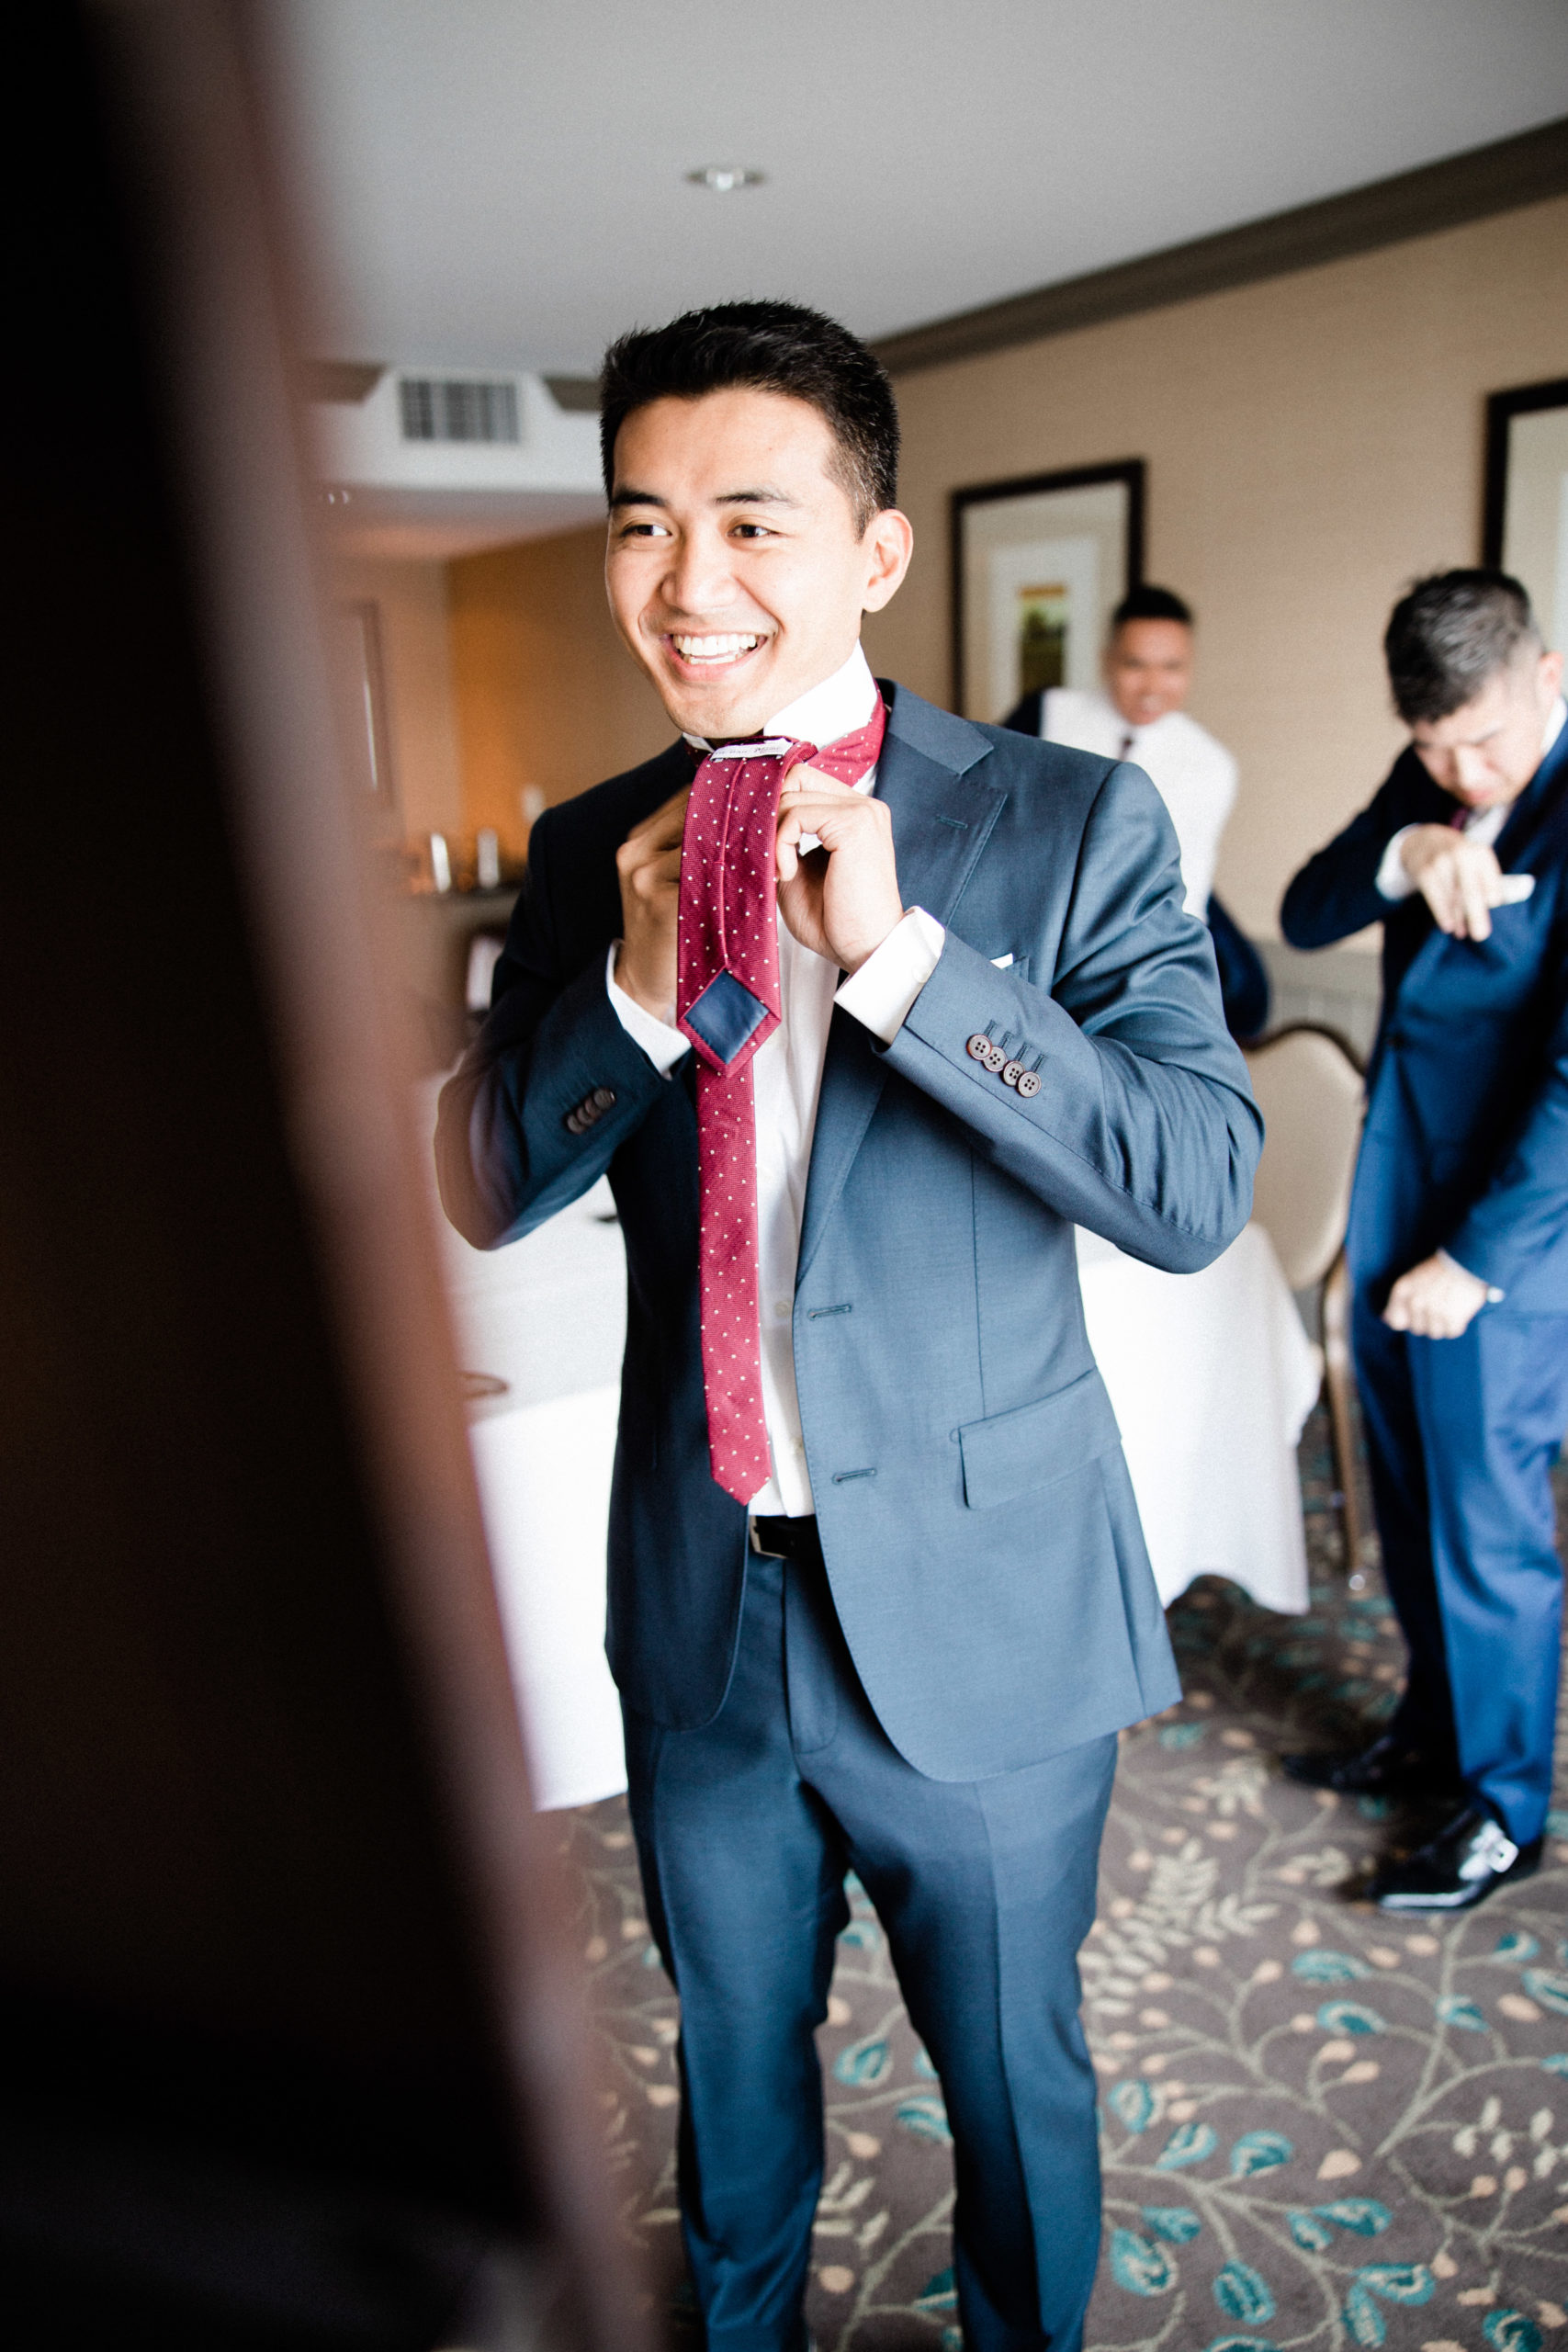 Edgewater hotel weddings have a groomsmen suite to try on tuxedos